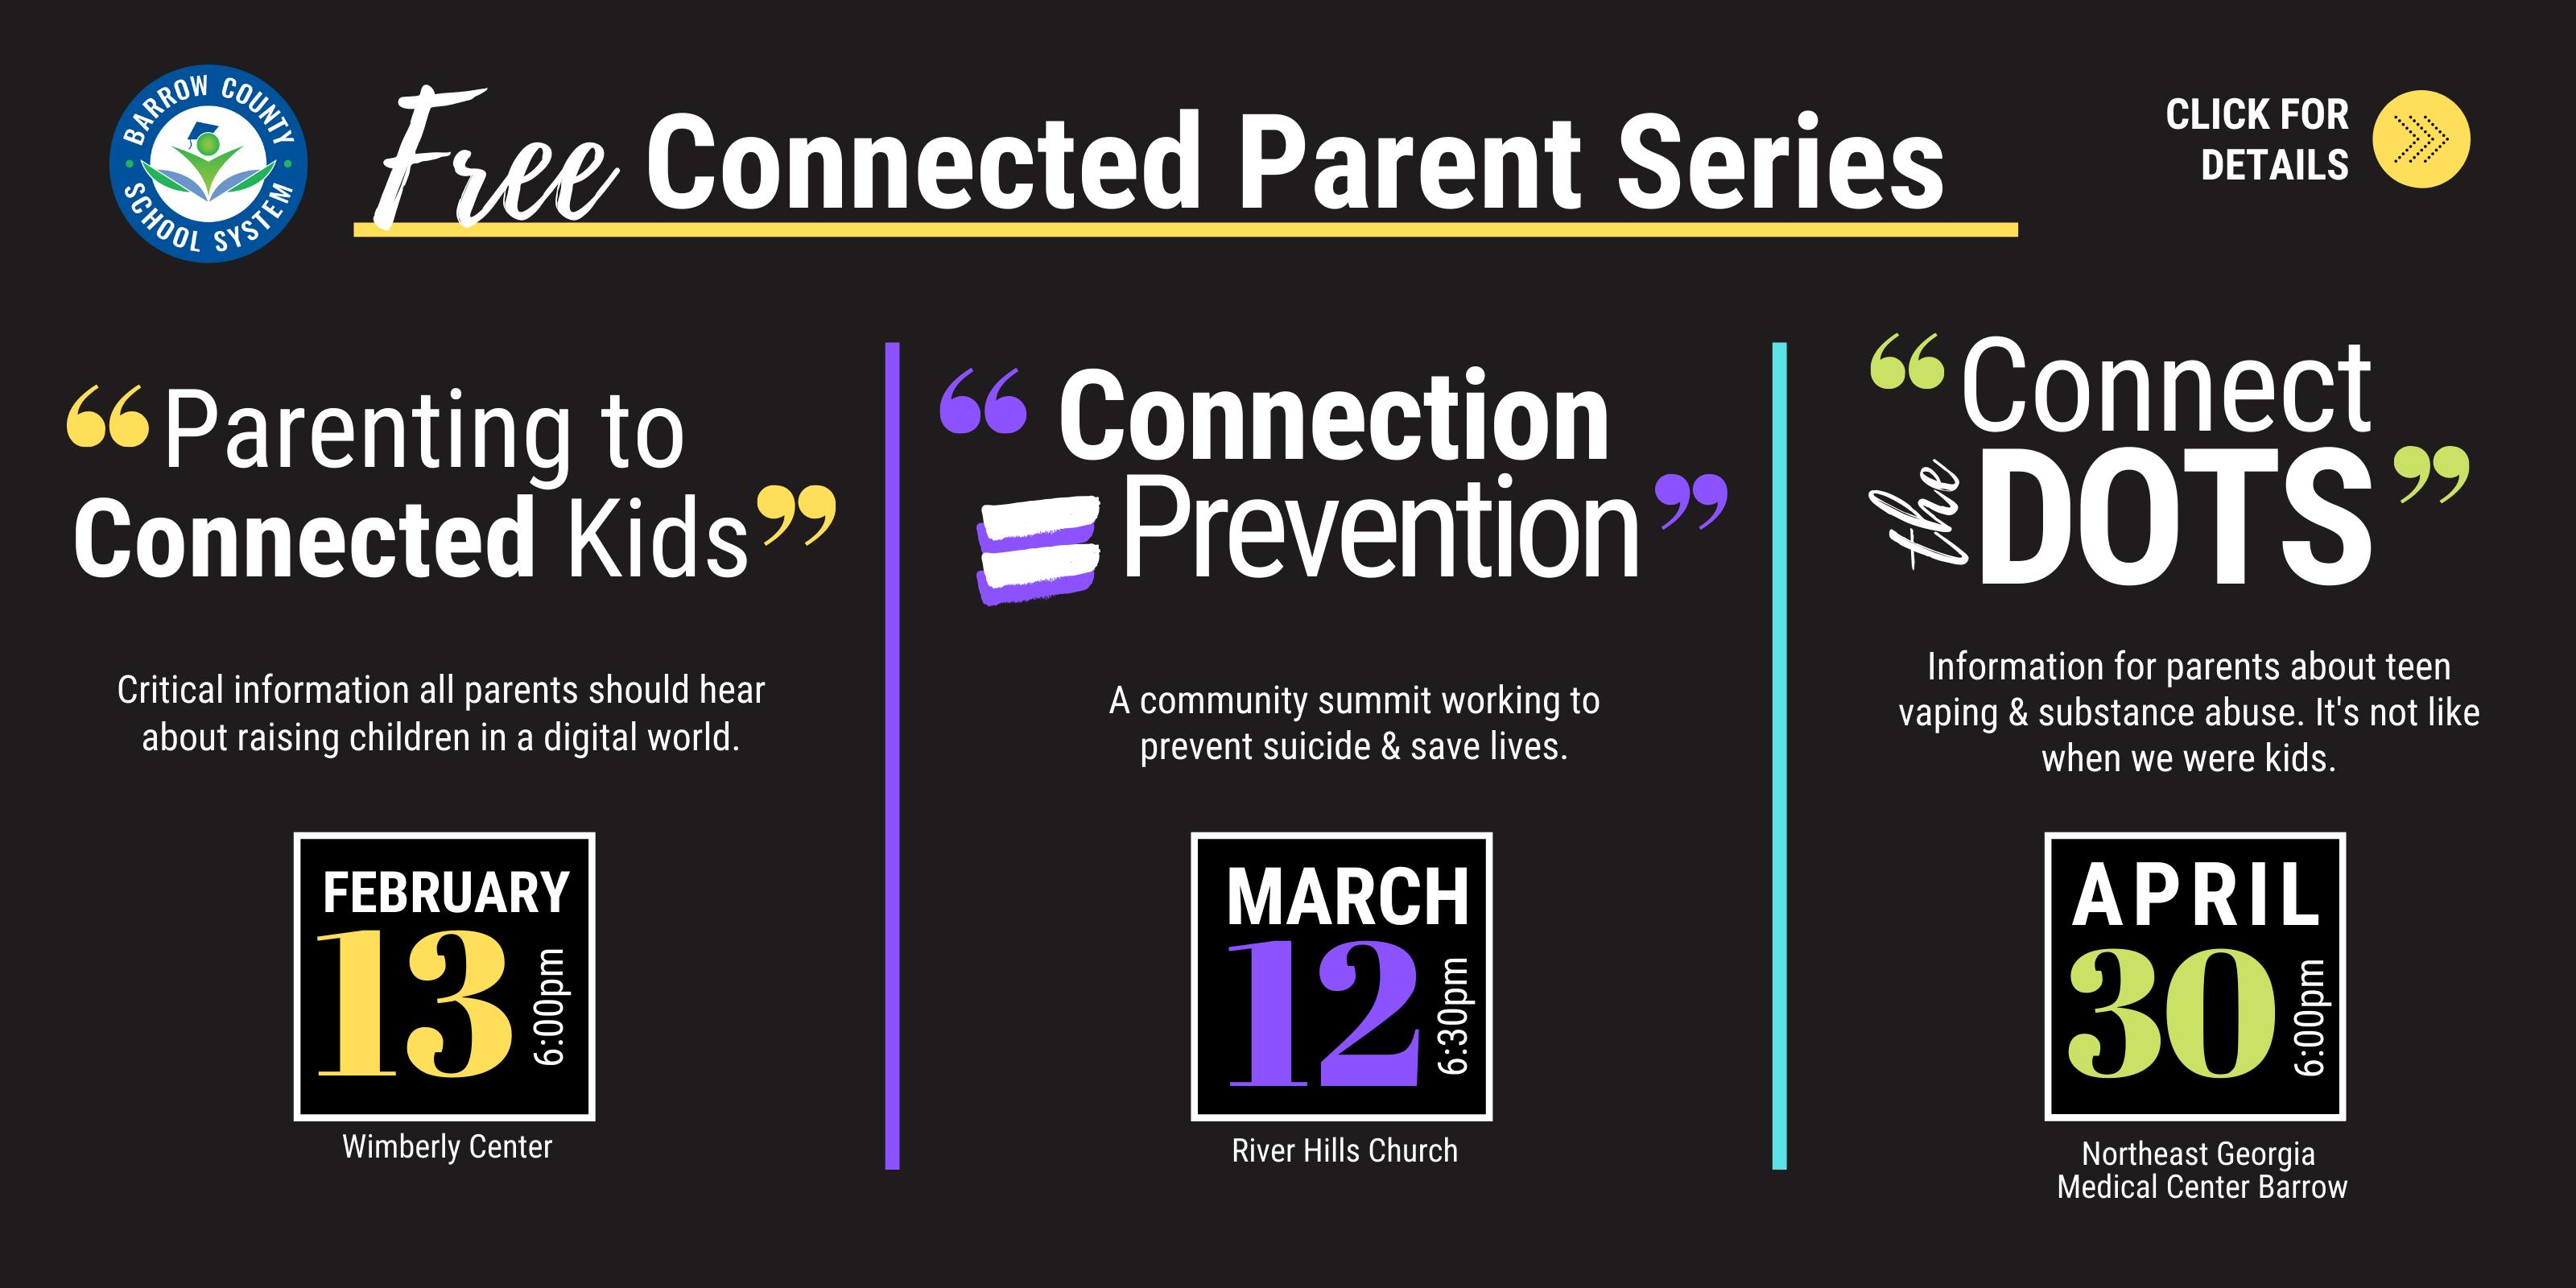 Connecting Parent Series-Free Presentations for Parents